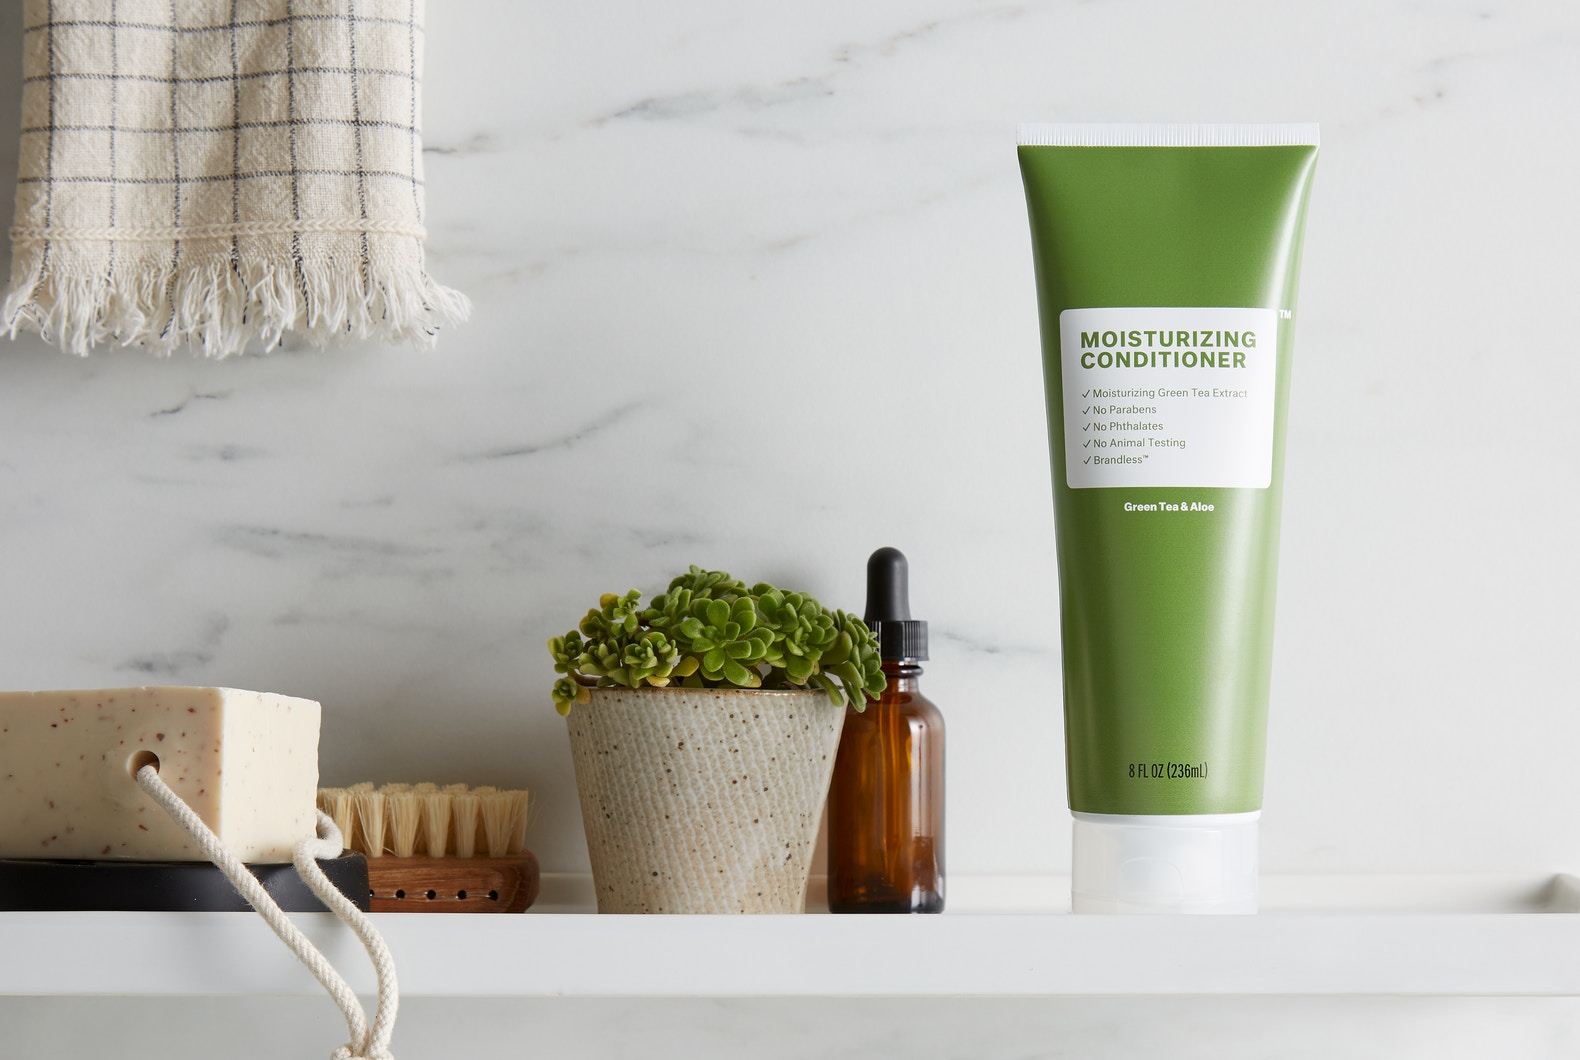 Green Tea & Aloe Moisturizing Conditioner